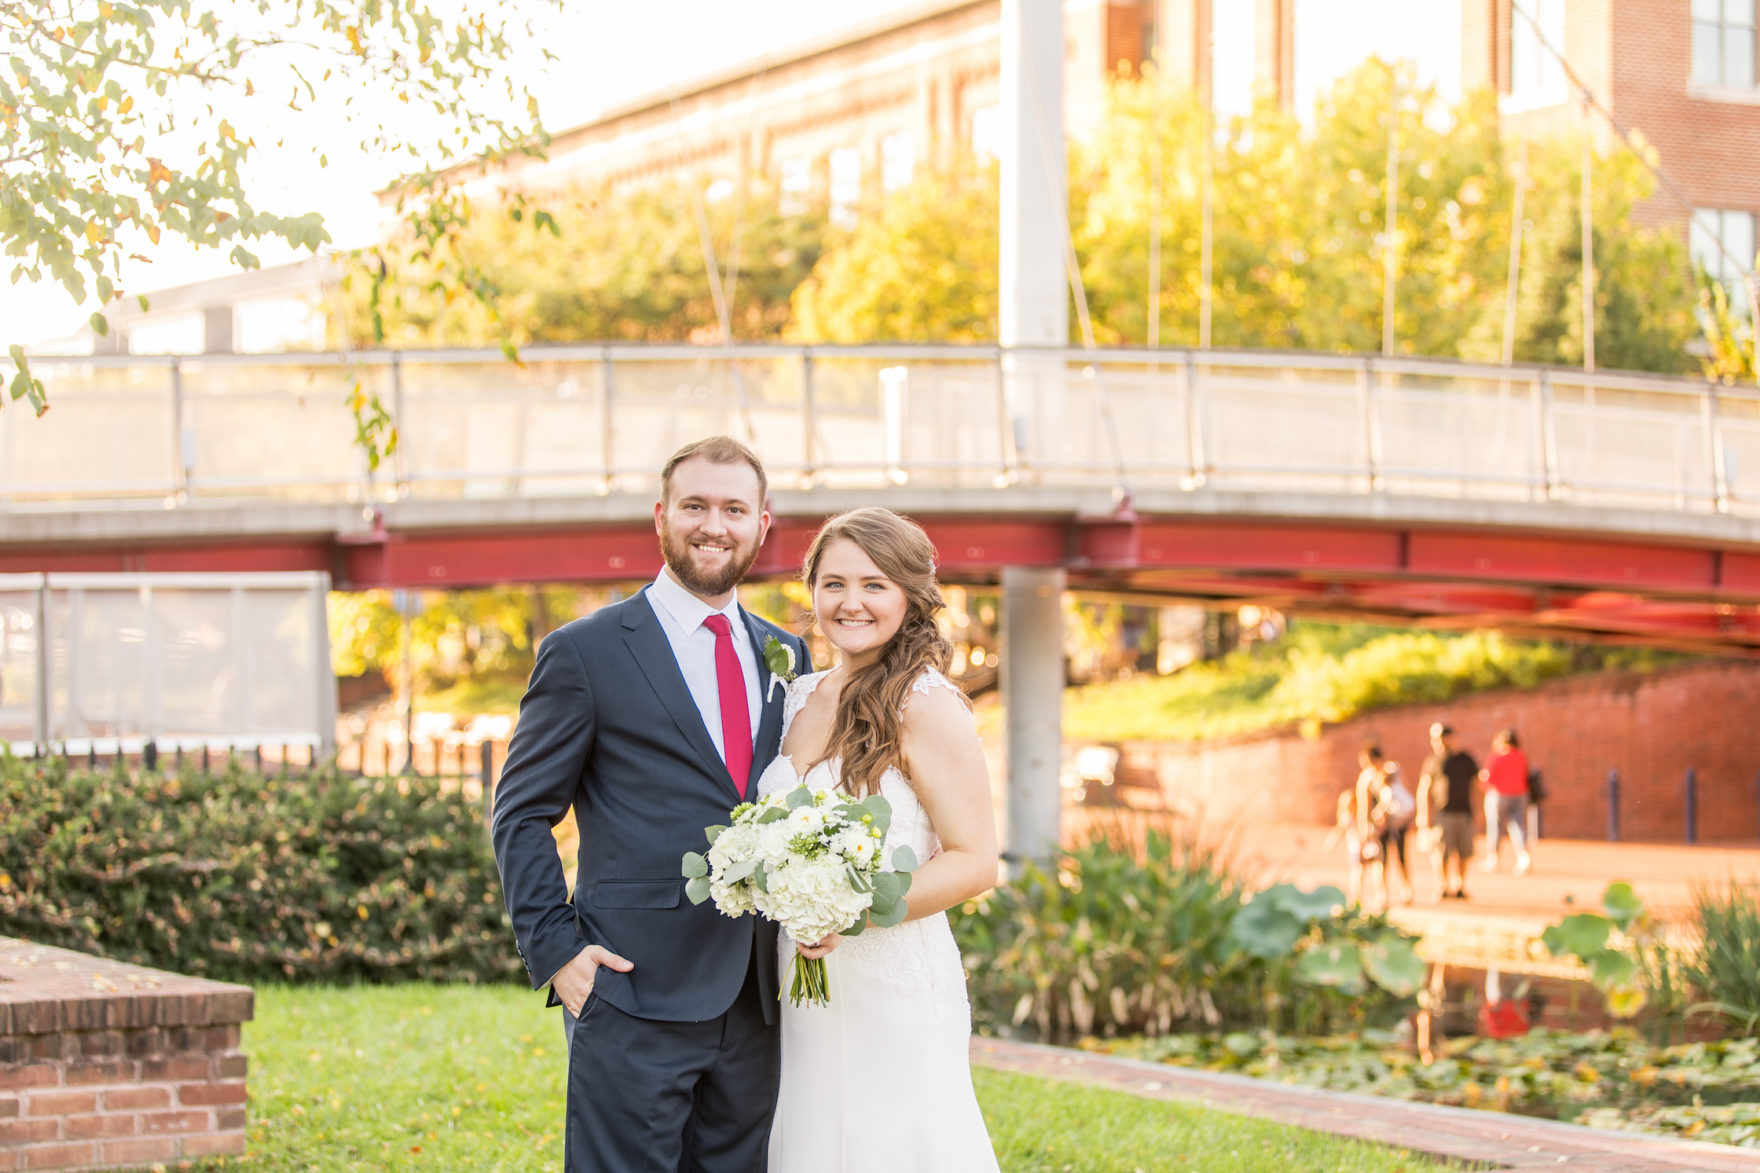 McClintlock Distillery Wedding | Frederick Maryland – Lindsay & Steve